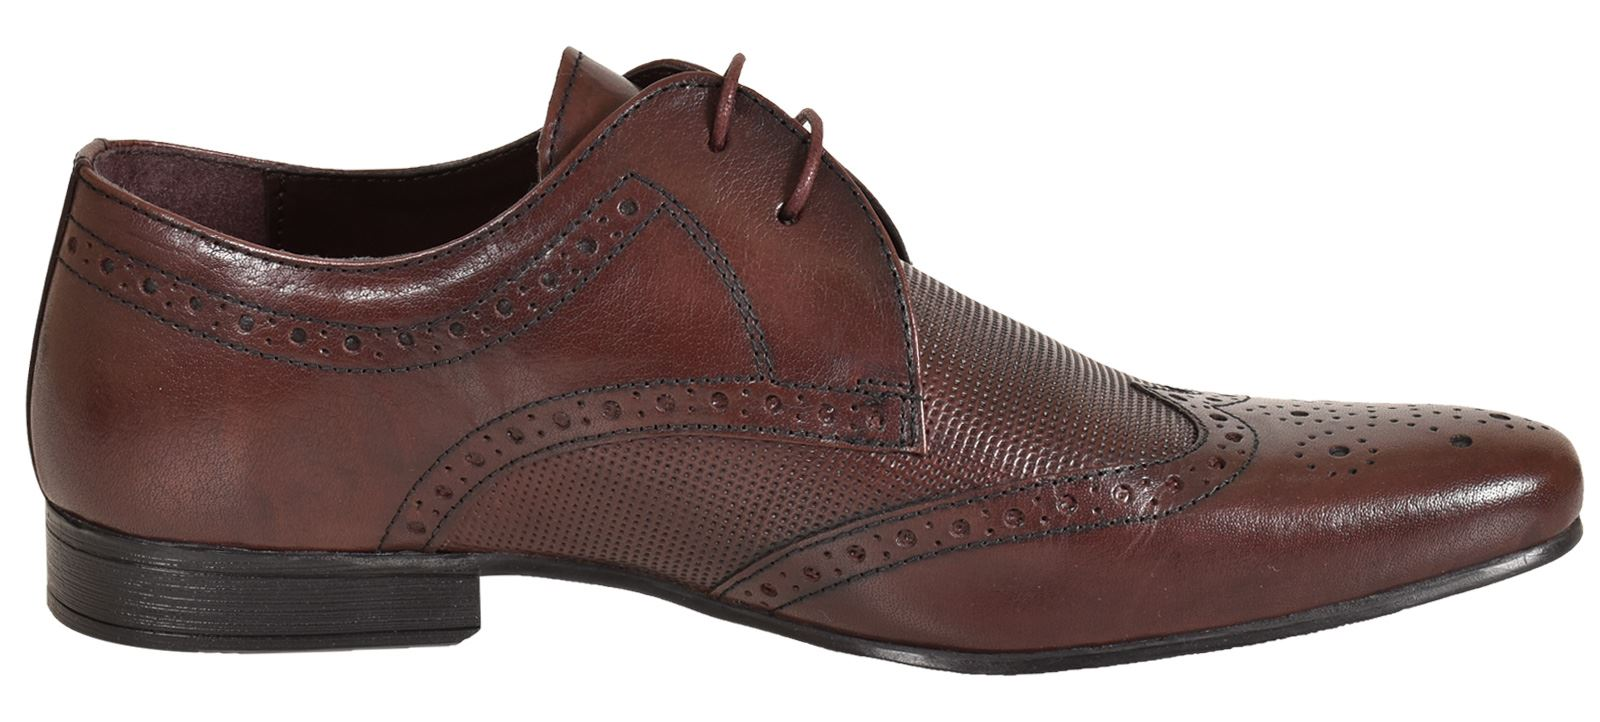 Mens-UK-Style-Leather-Lining-Formal-Office-Wedding-Smart-Work-Brogue-Shoes thumbnail 120